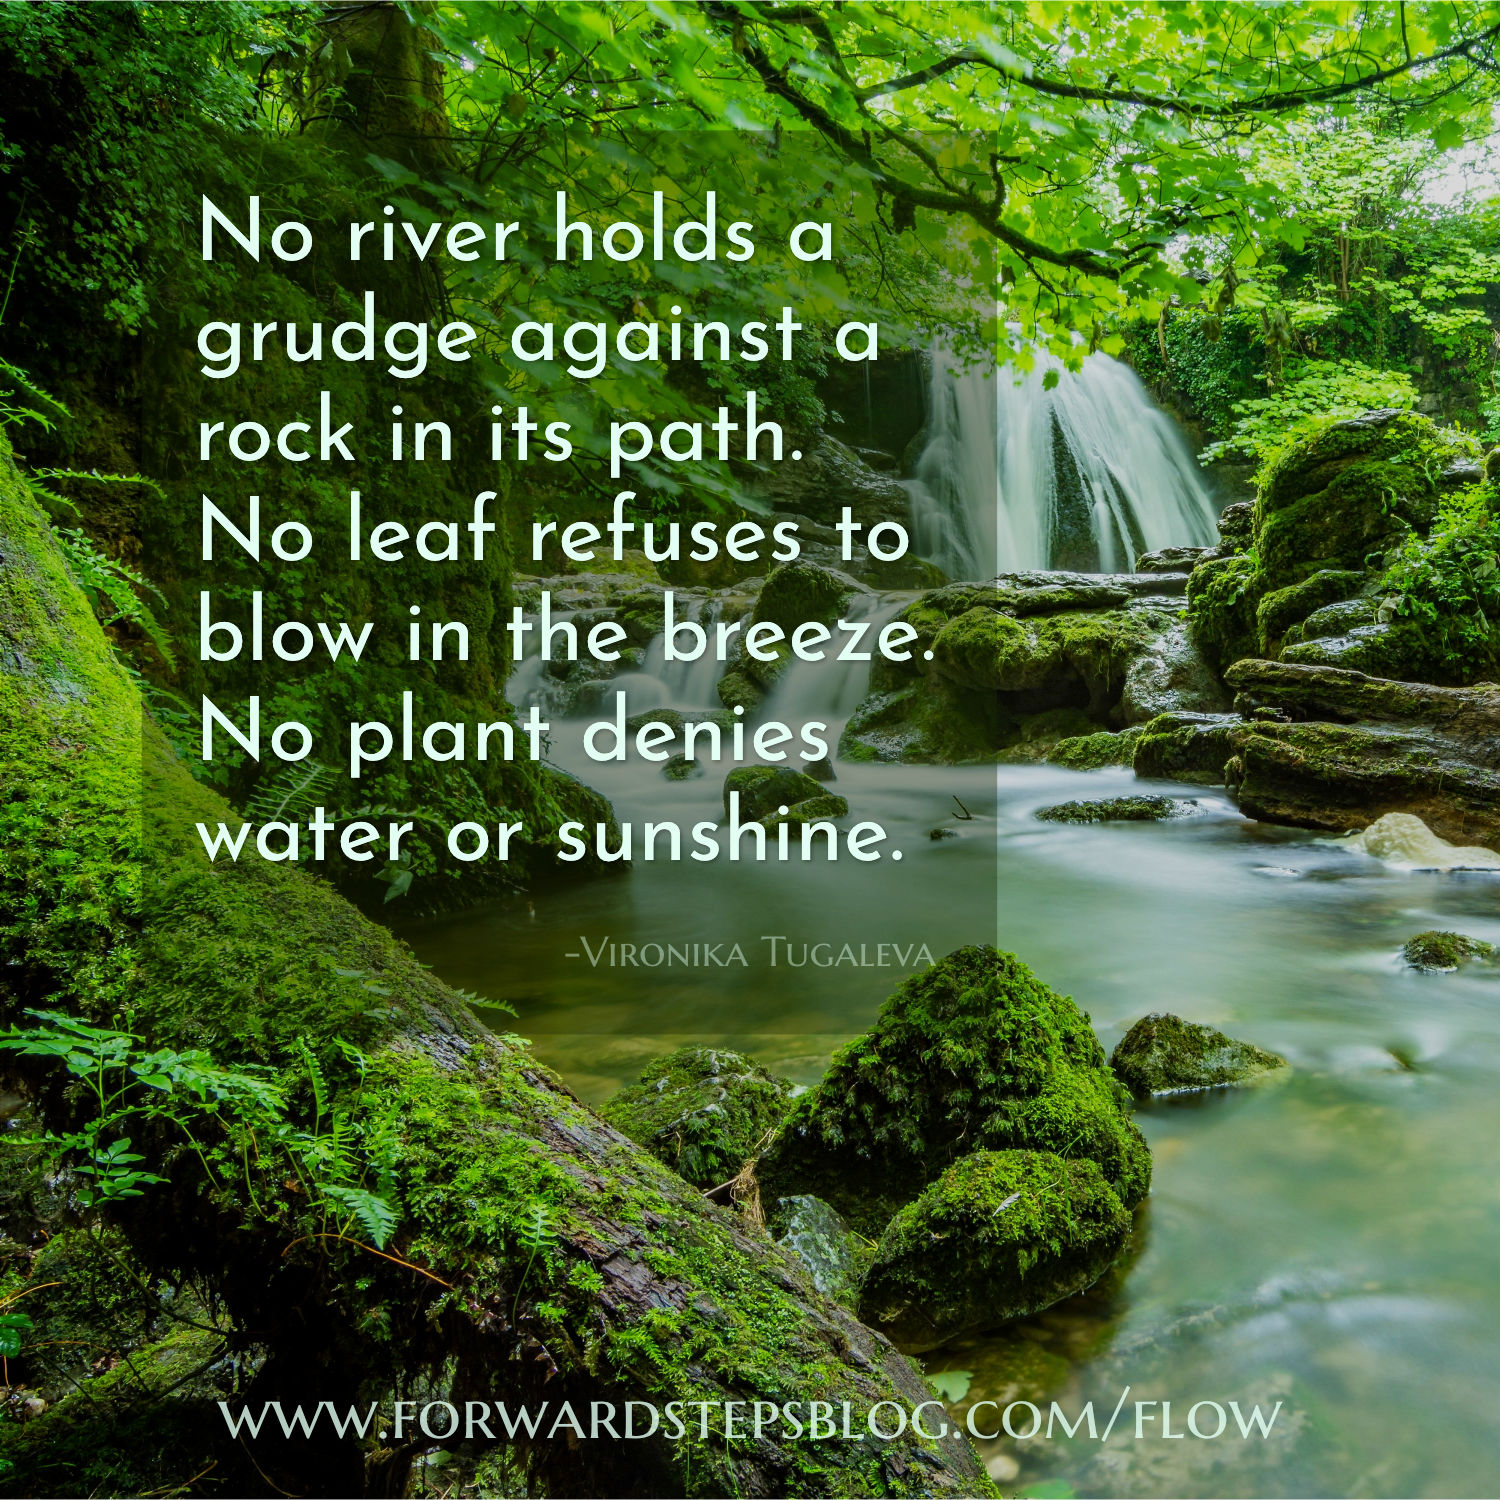 No river holds a grudge - Forward Steps image_16